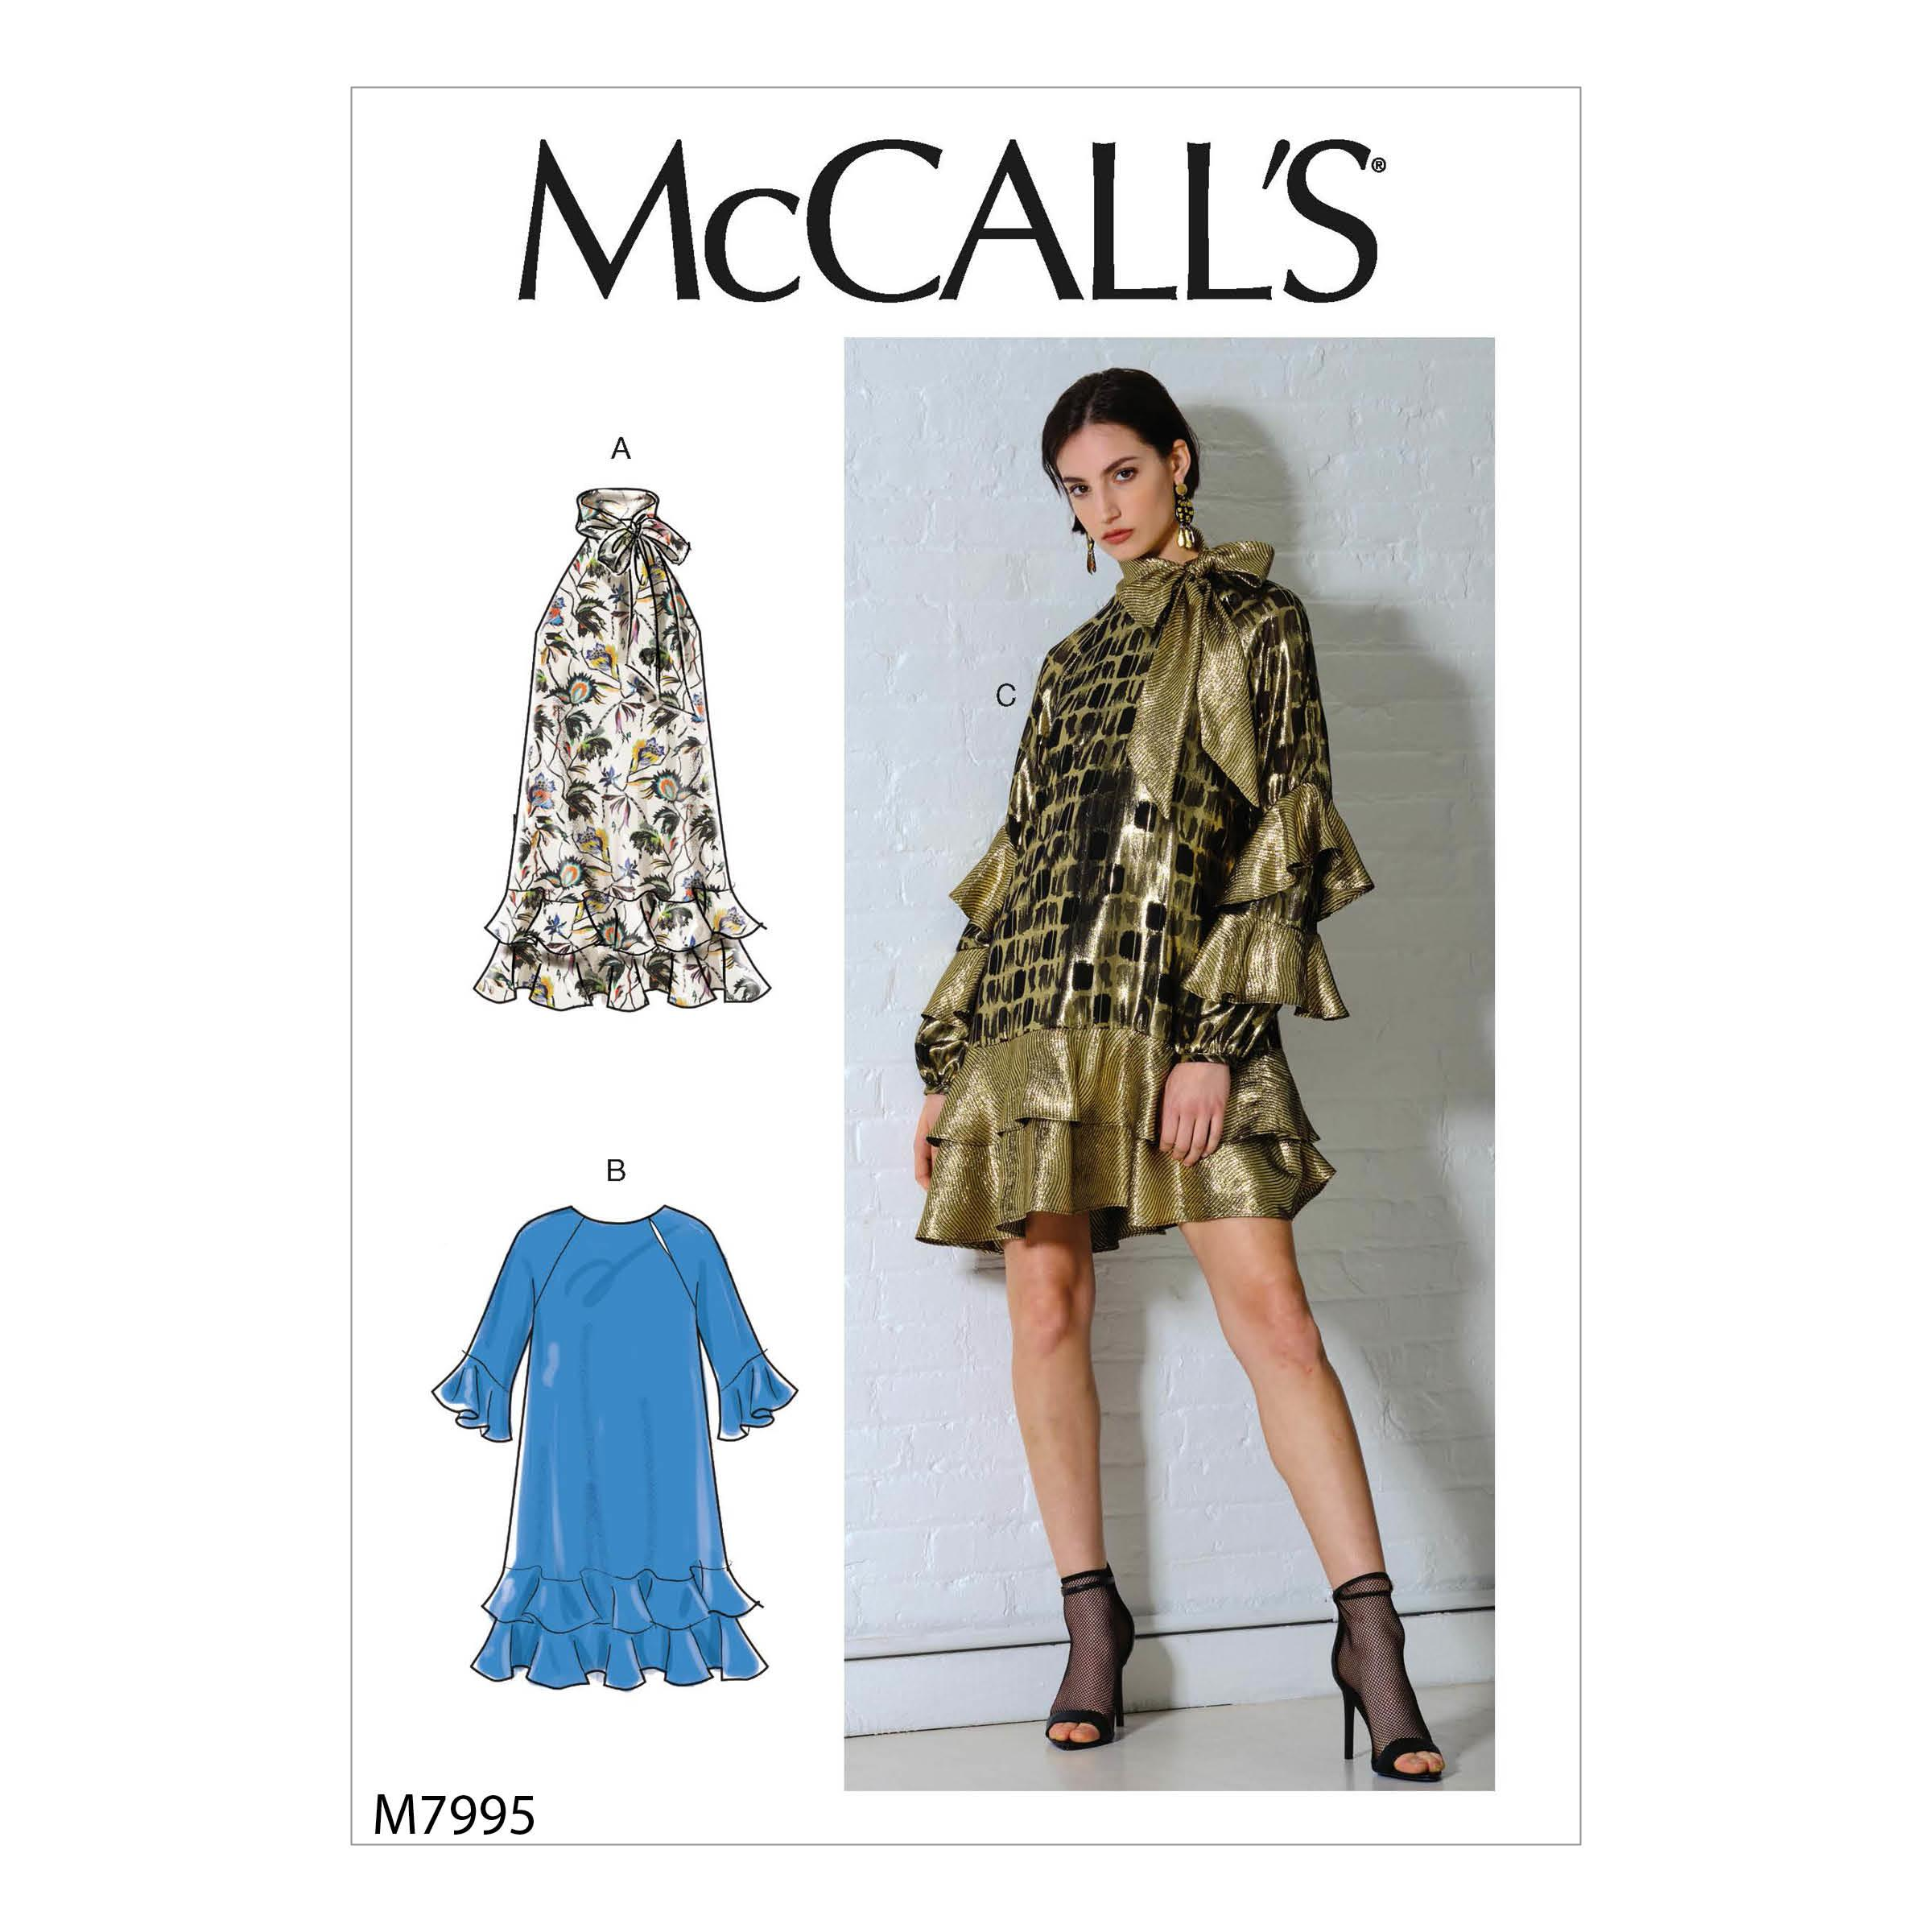 McCalls M7995 Misses Dresses, Misses Prom, Evening & Bridal